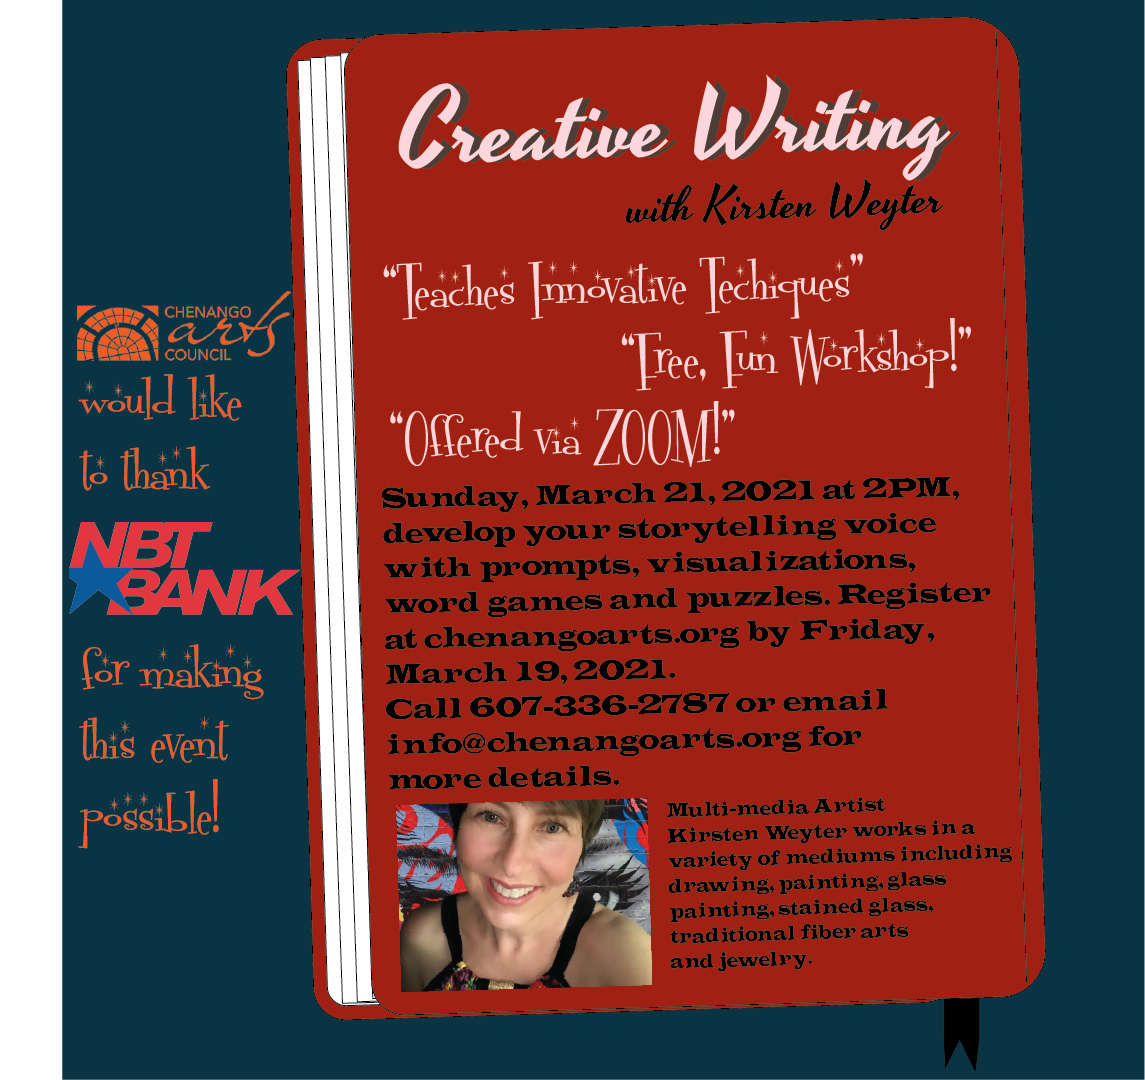 Creative Writing with Kirsten Weyter